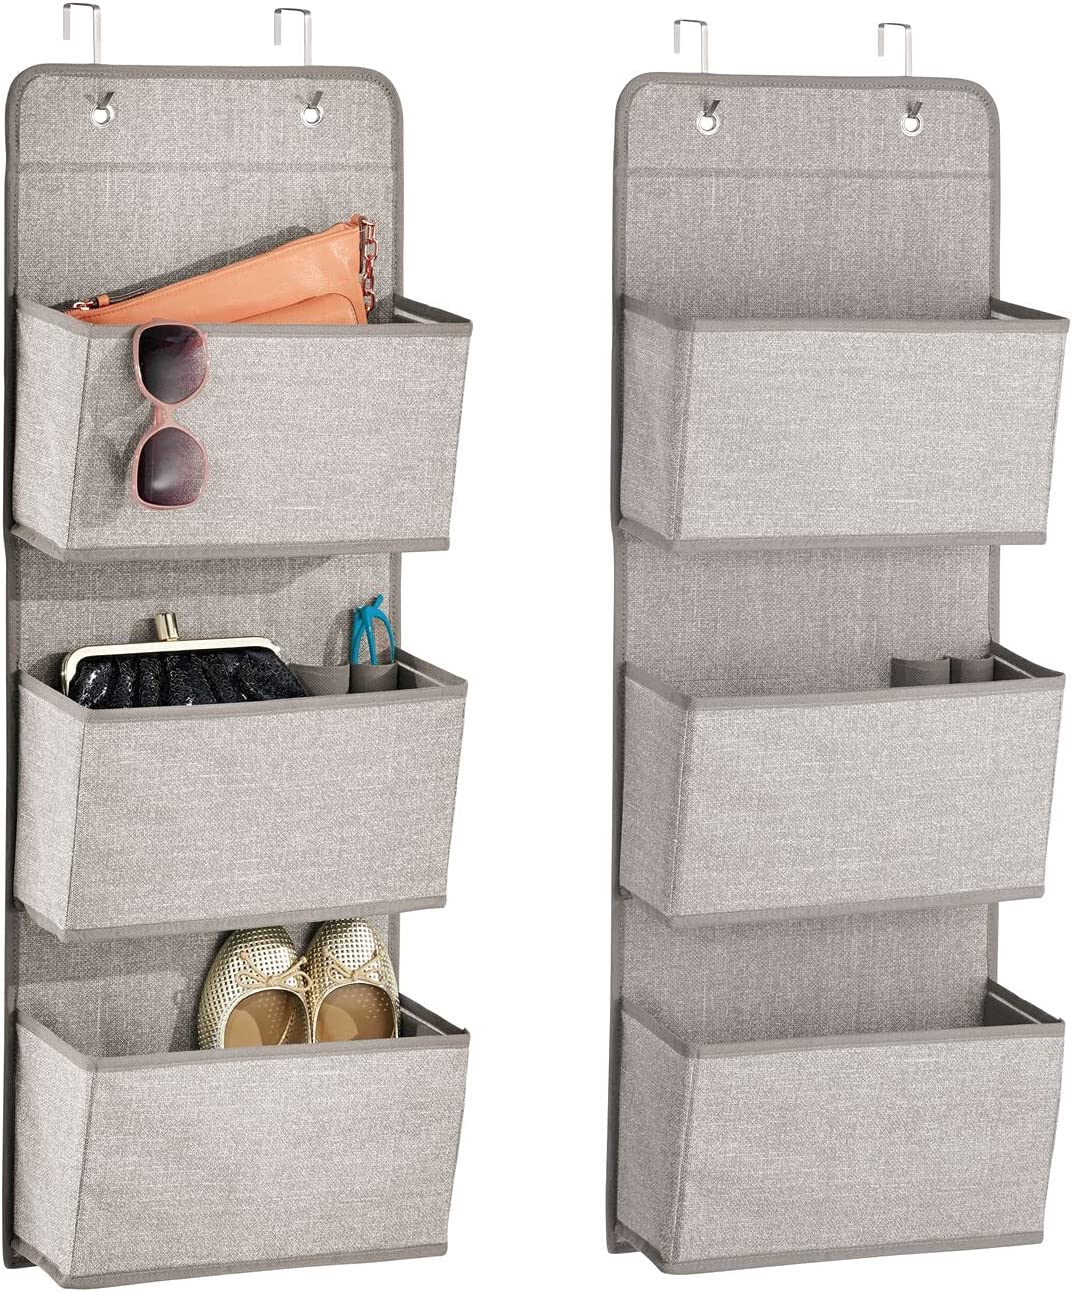 mDesign Soft depot Fabric Discount mail order Over The Hanging with Storage Door Organizer